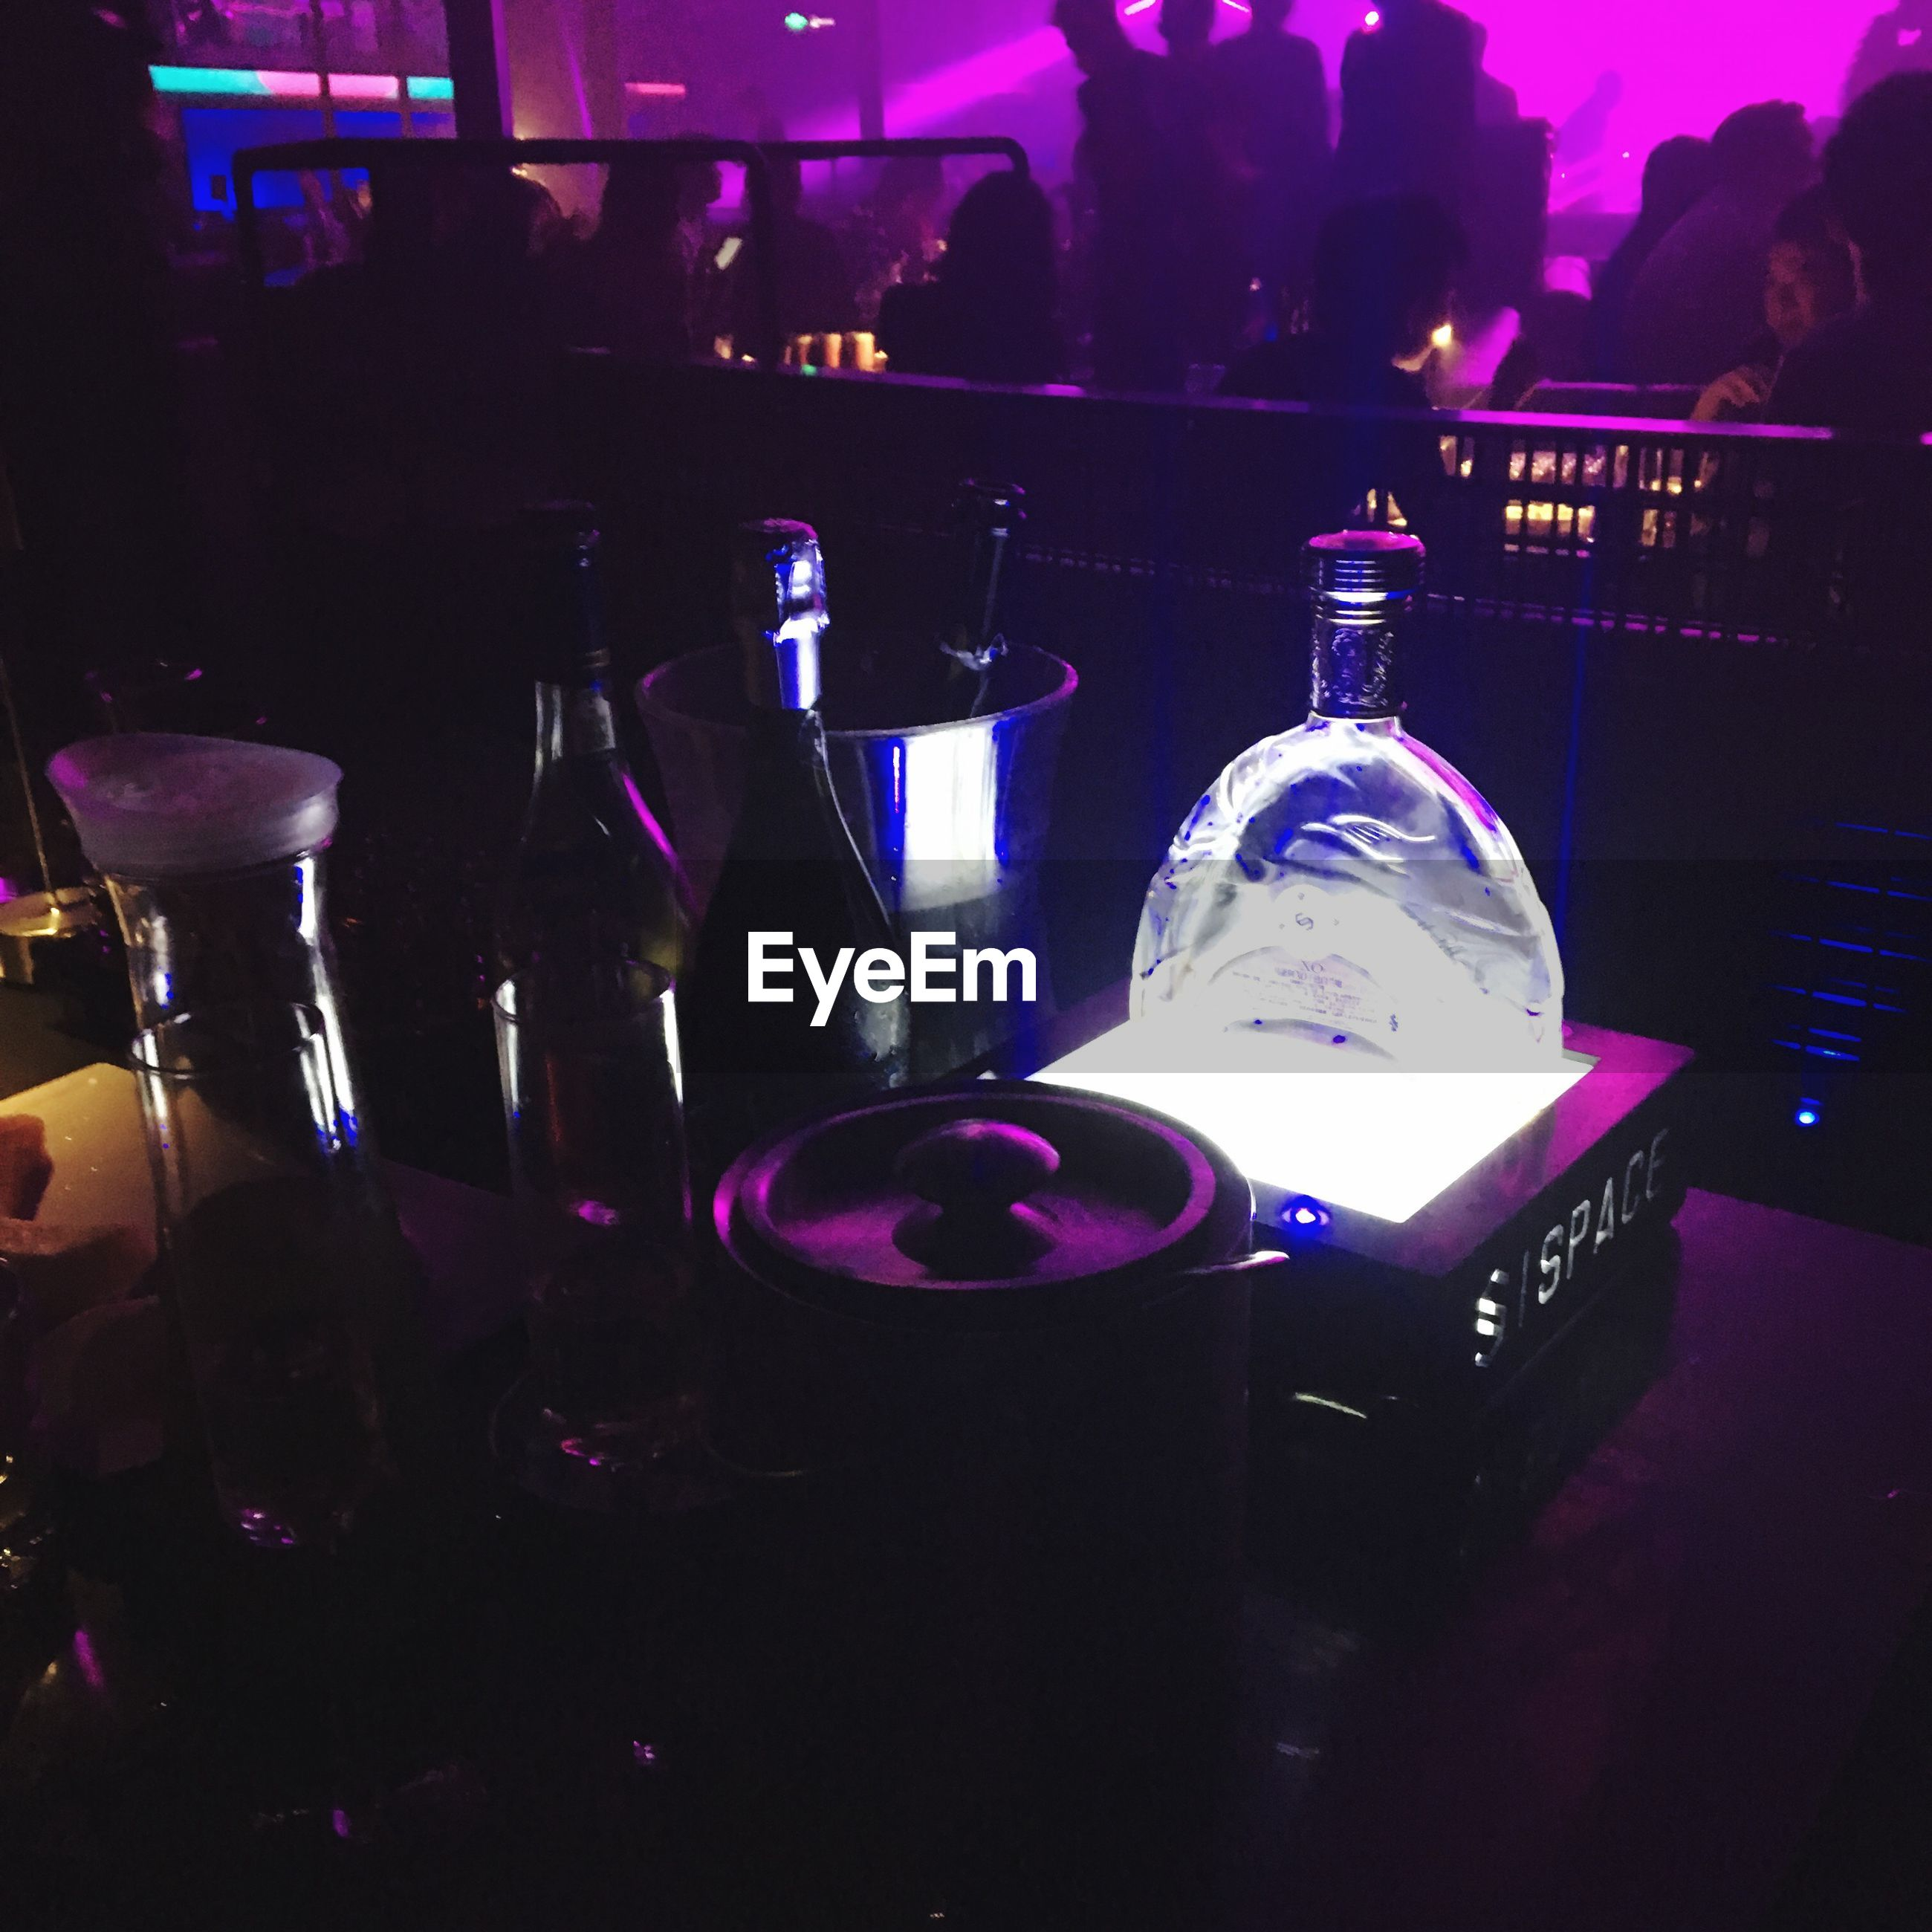 drink, absence, table, food and drink, group of objects, dark, wine glass, nightlife, bar counter, arrangement, blue, no people, large group of objects